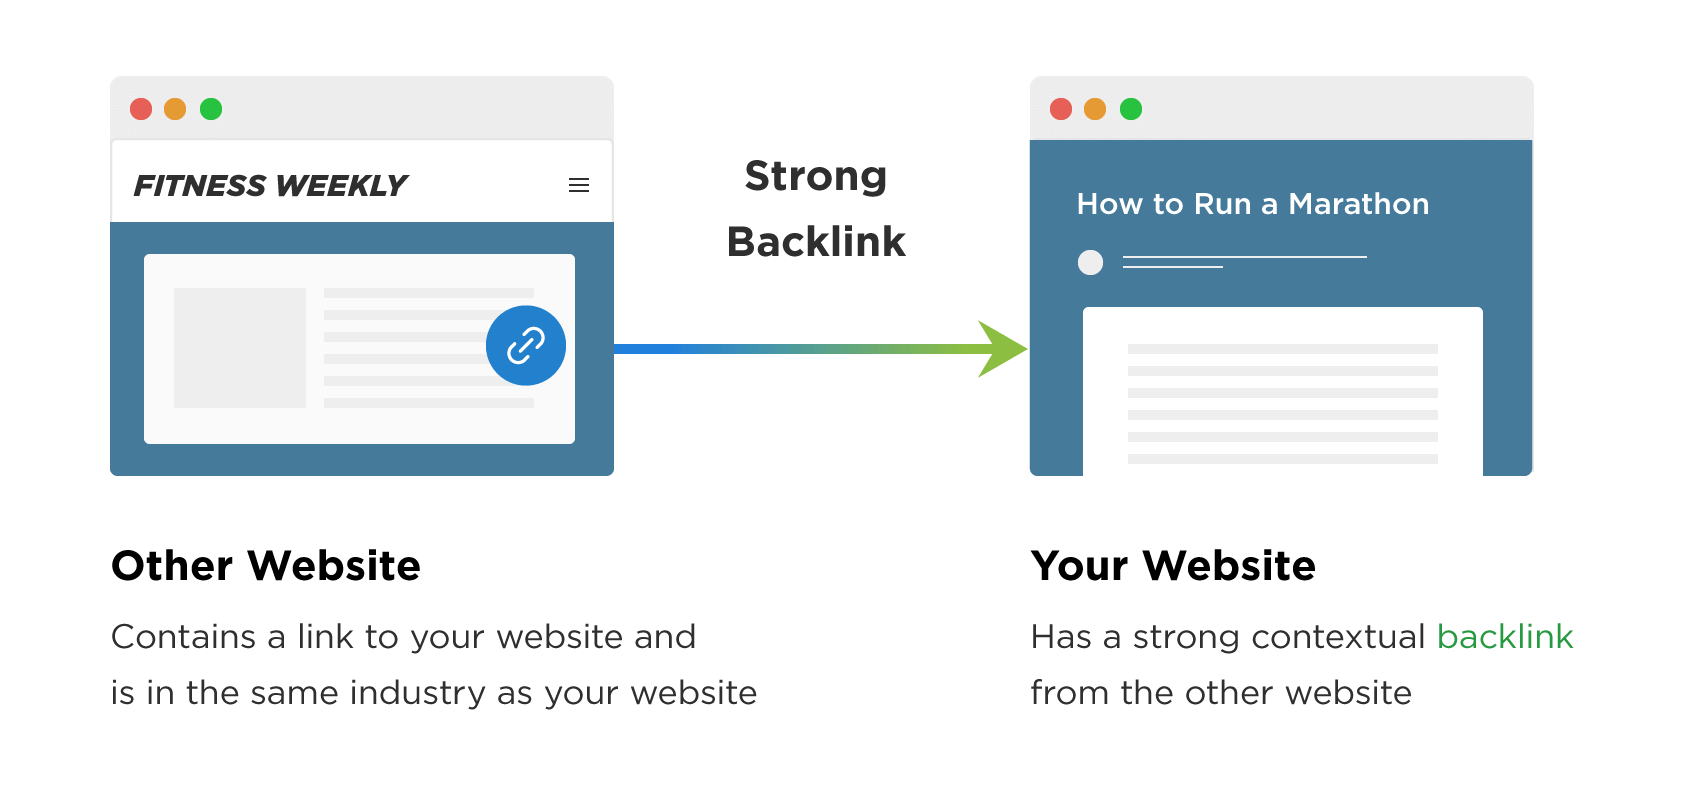 Contextual backlinks